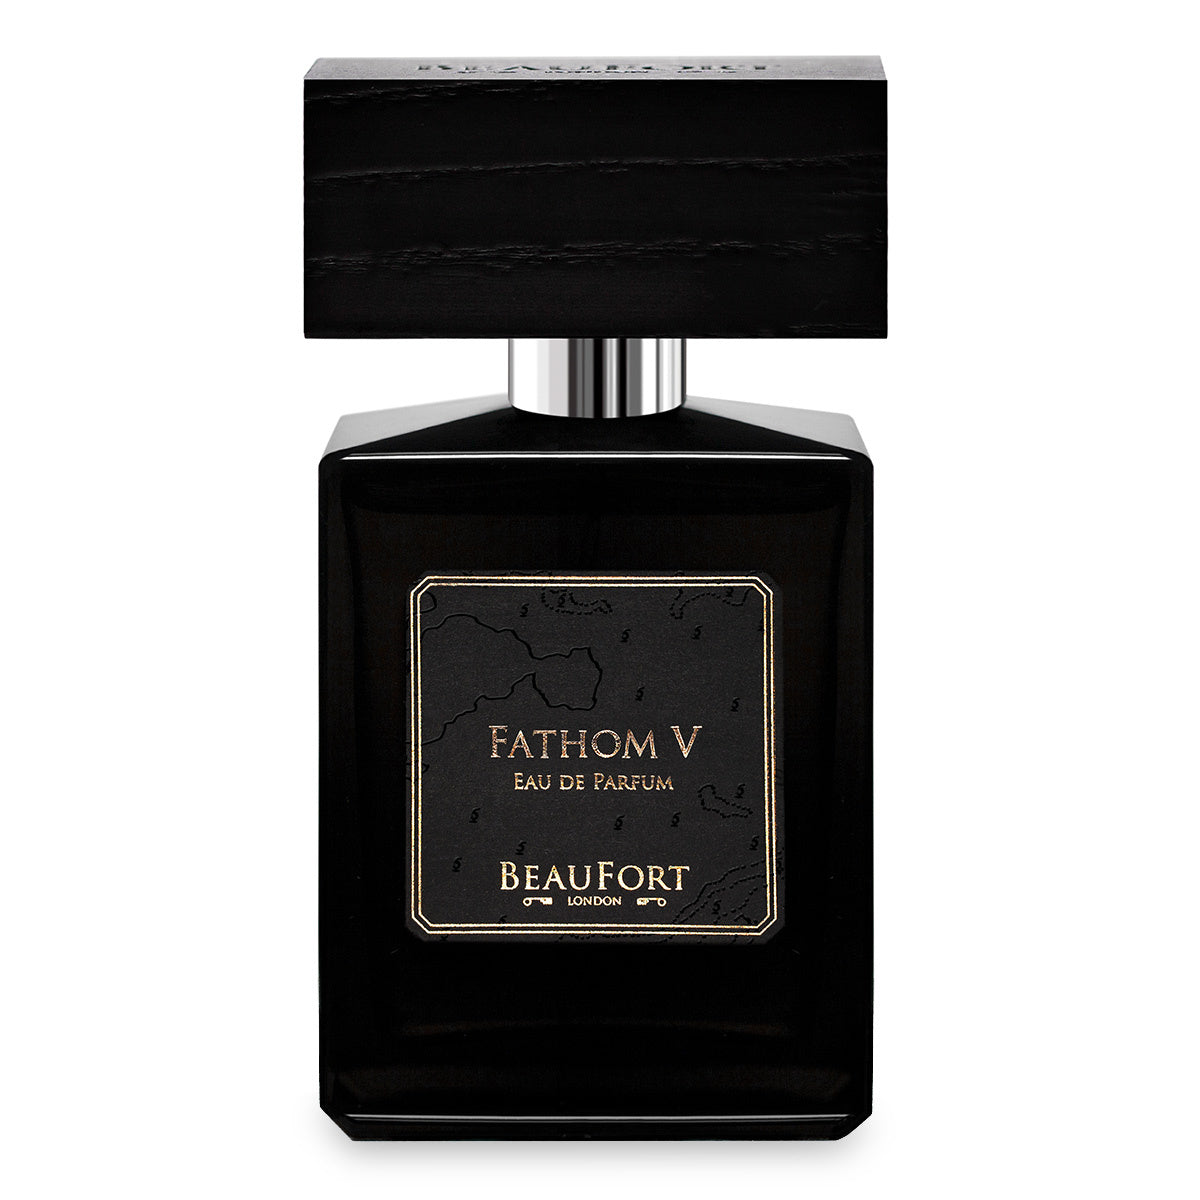 Niche Fragrance for Summer | BeauFort London Fathom V Eau de Parfum